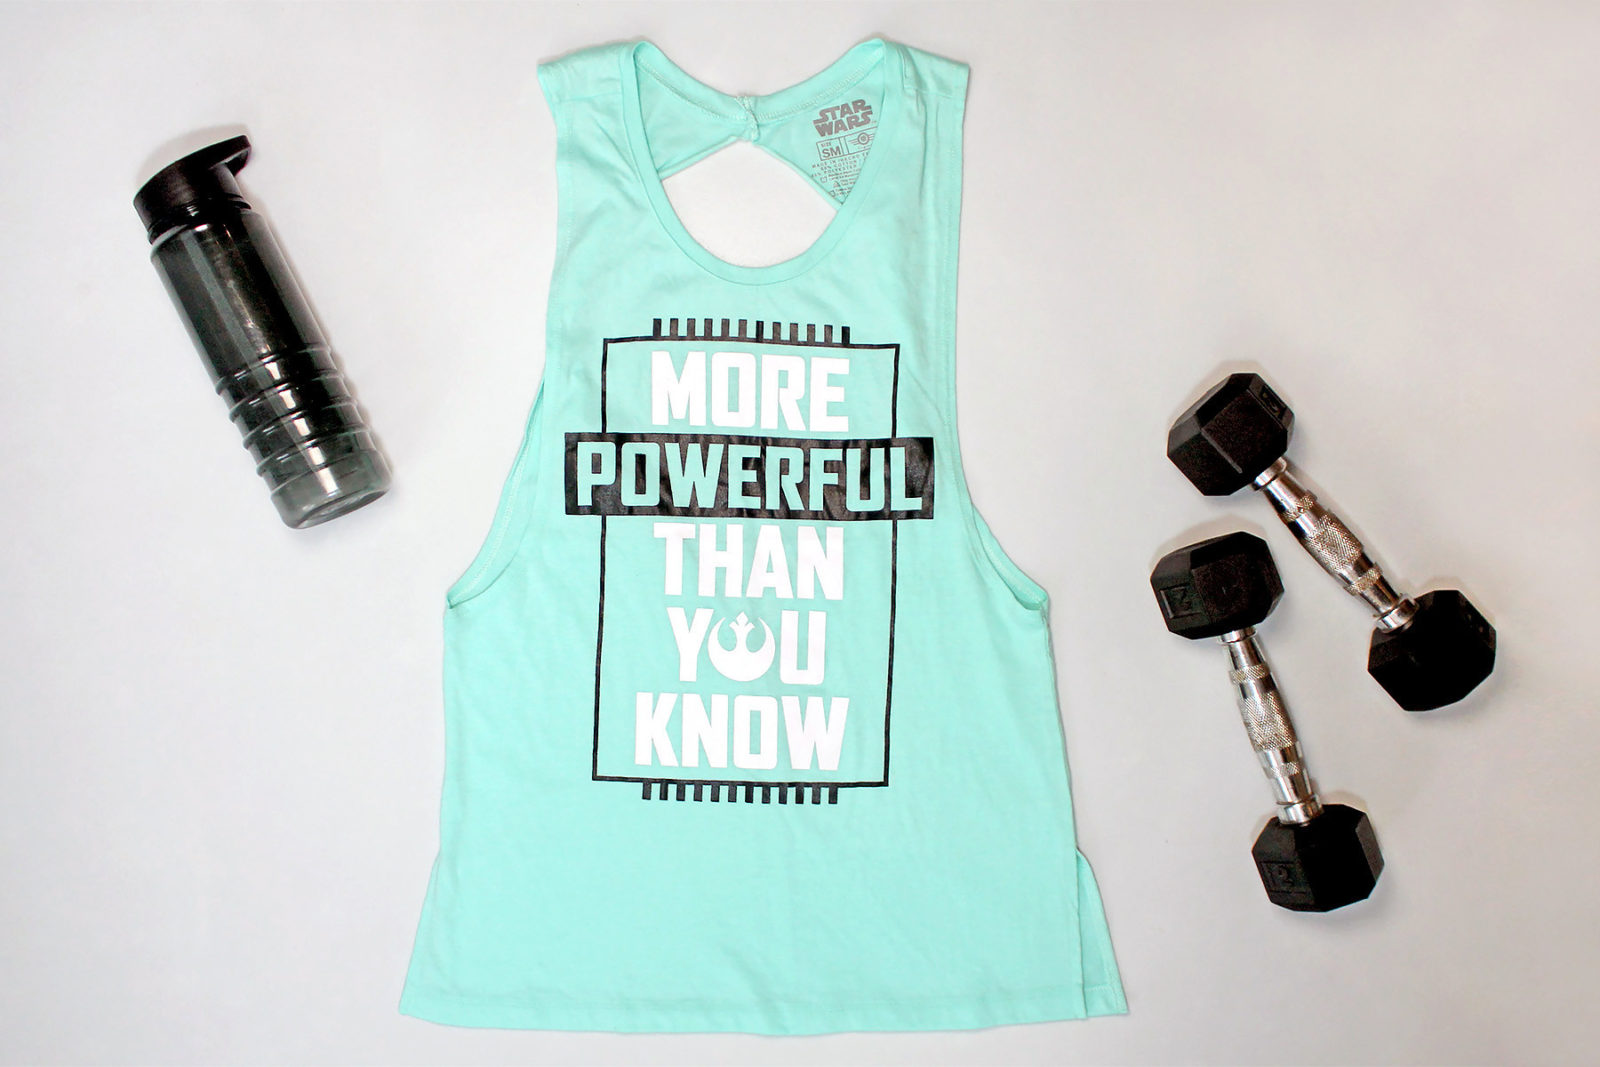 Women's Star Wars 'More Powerful Than You Know' tank top by Mad Engine